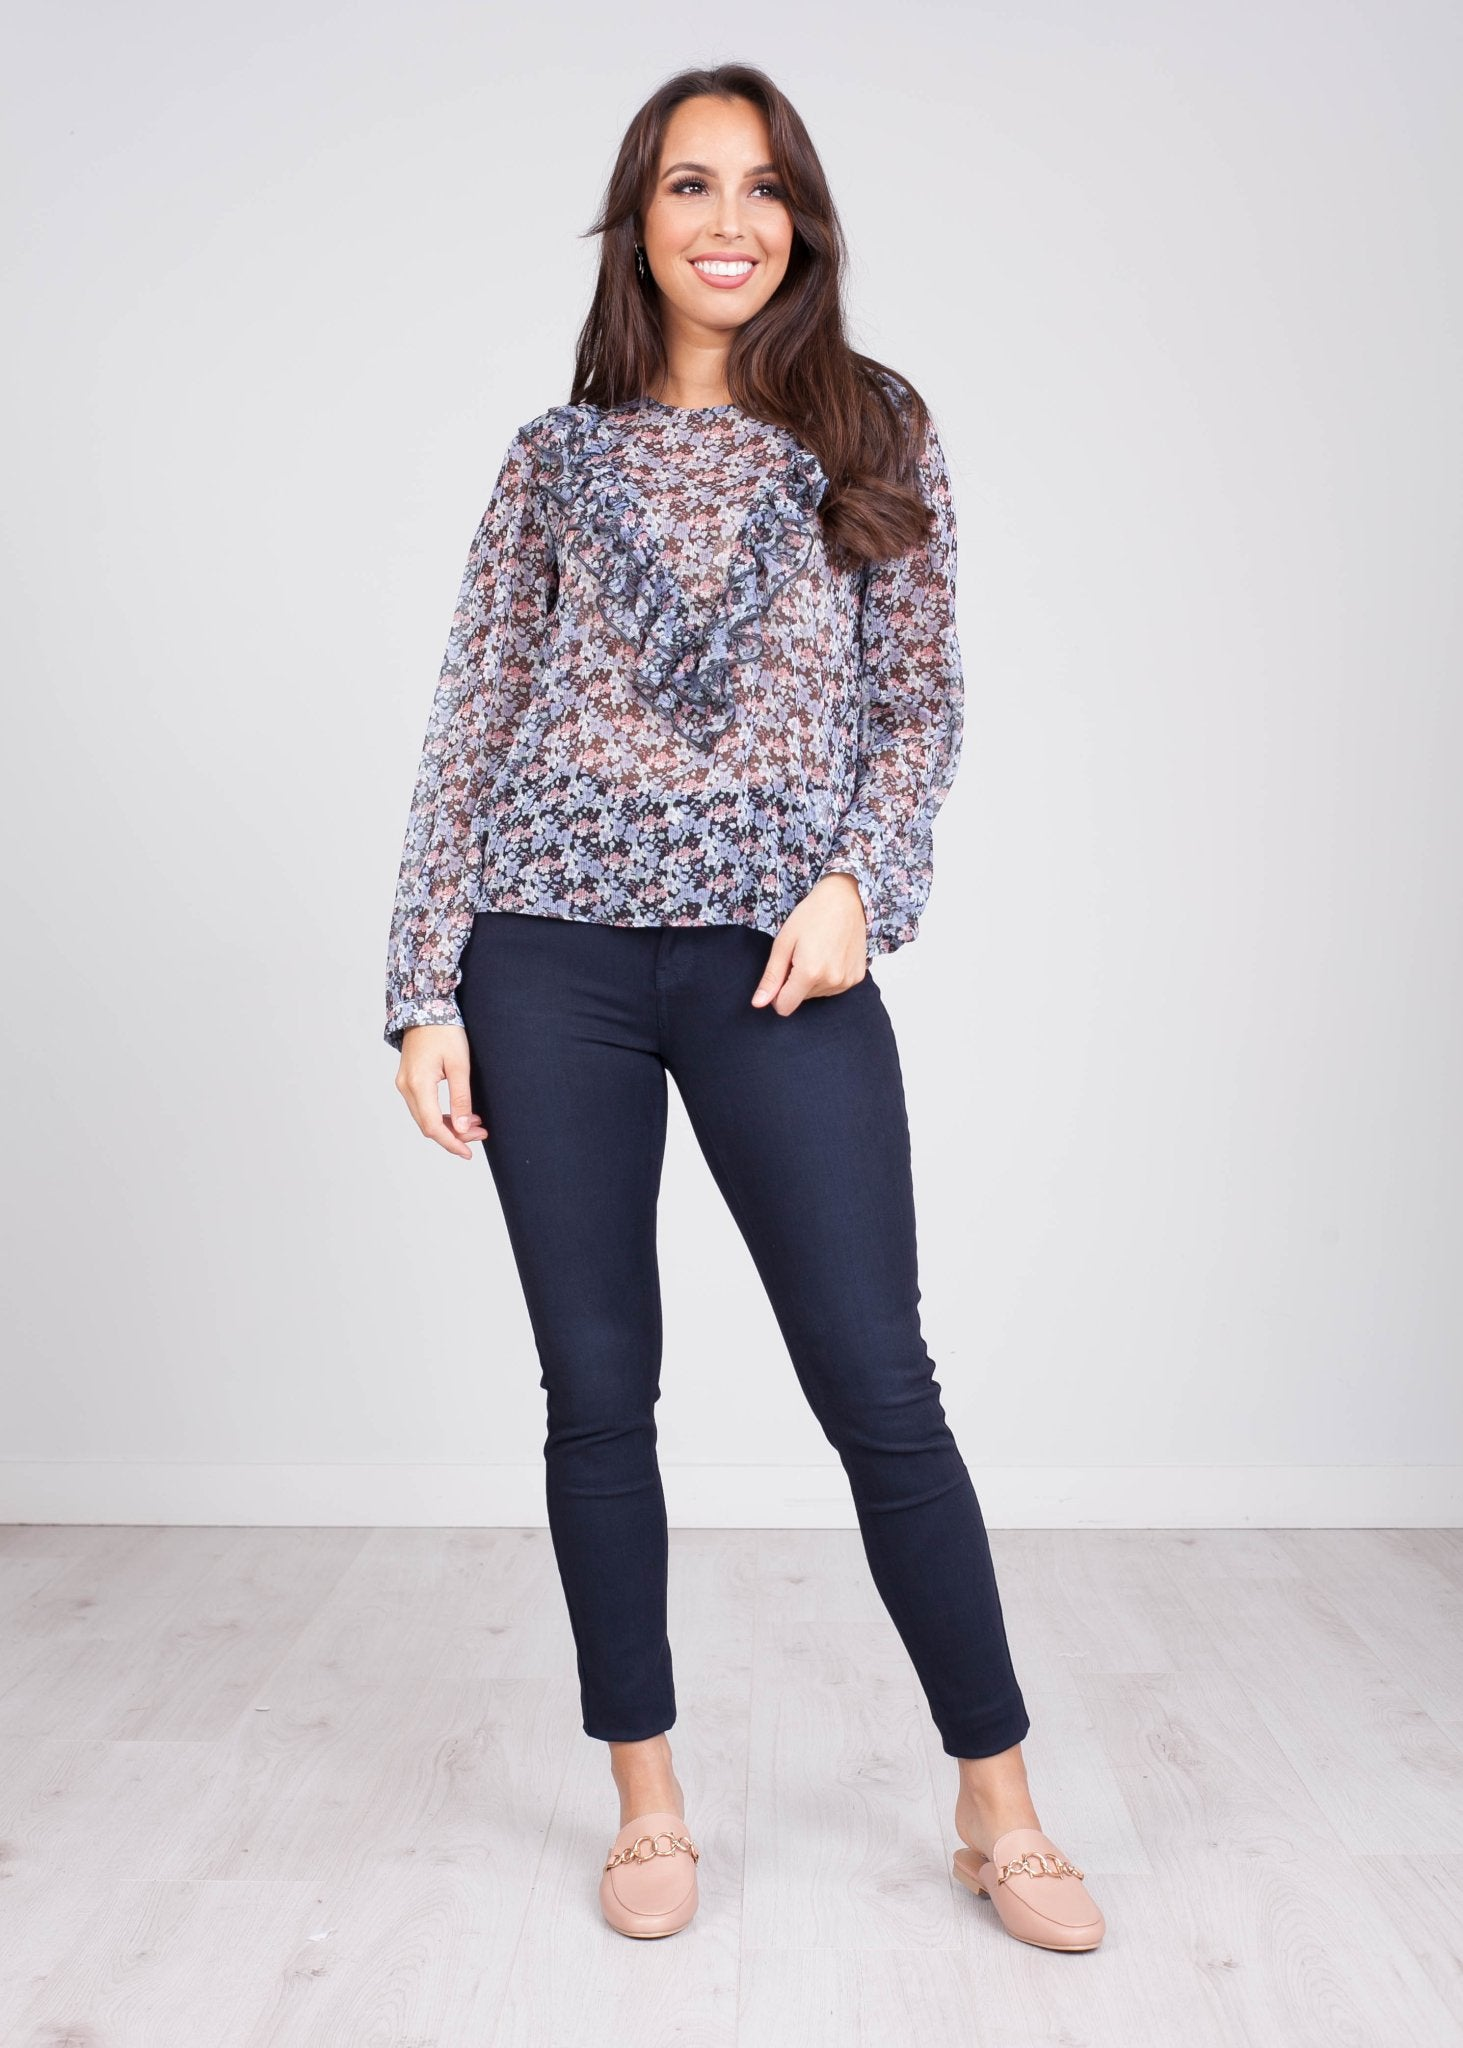 Charlee Sheer Floral Blouse - The Walk in Wardrobe